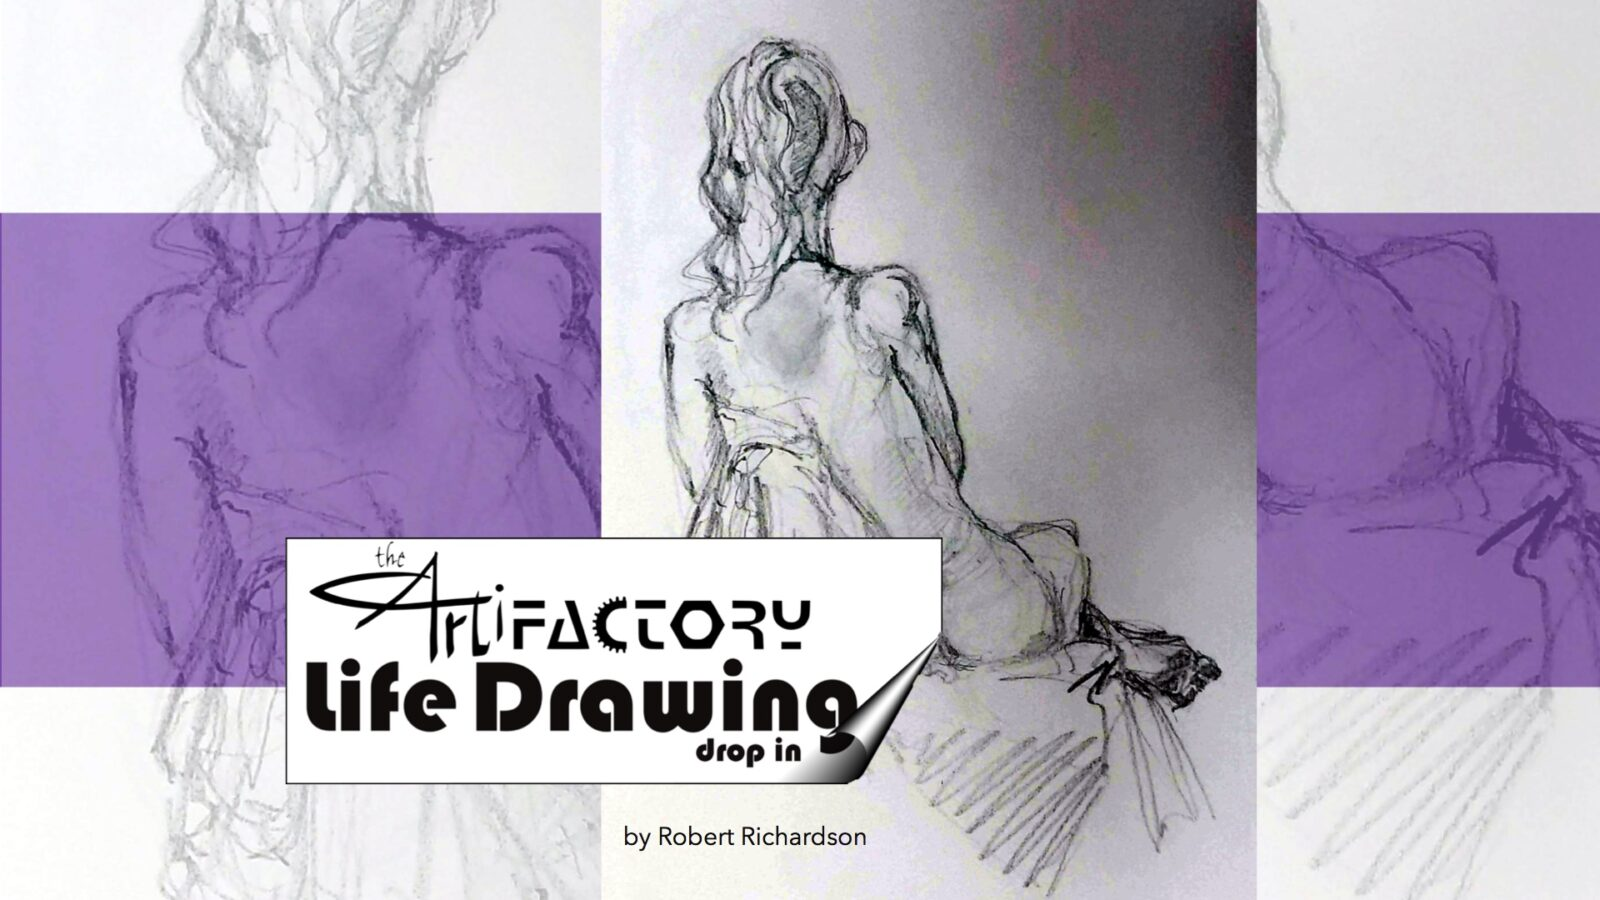 September Life Drawing